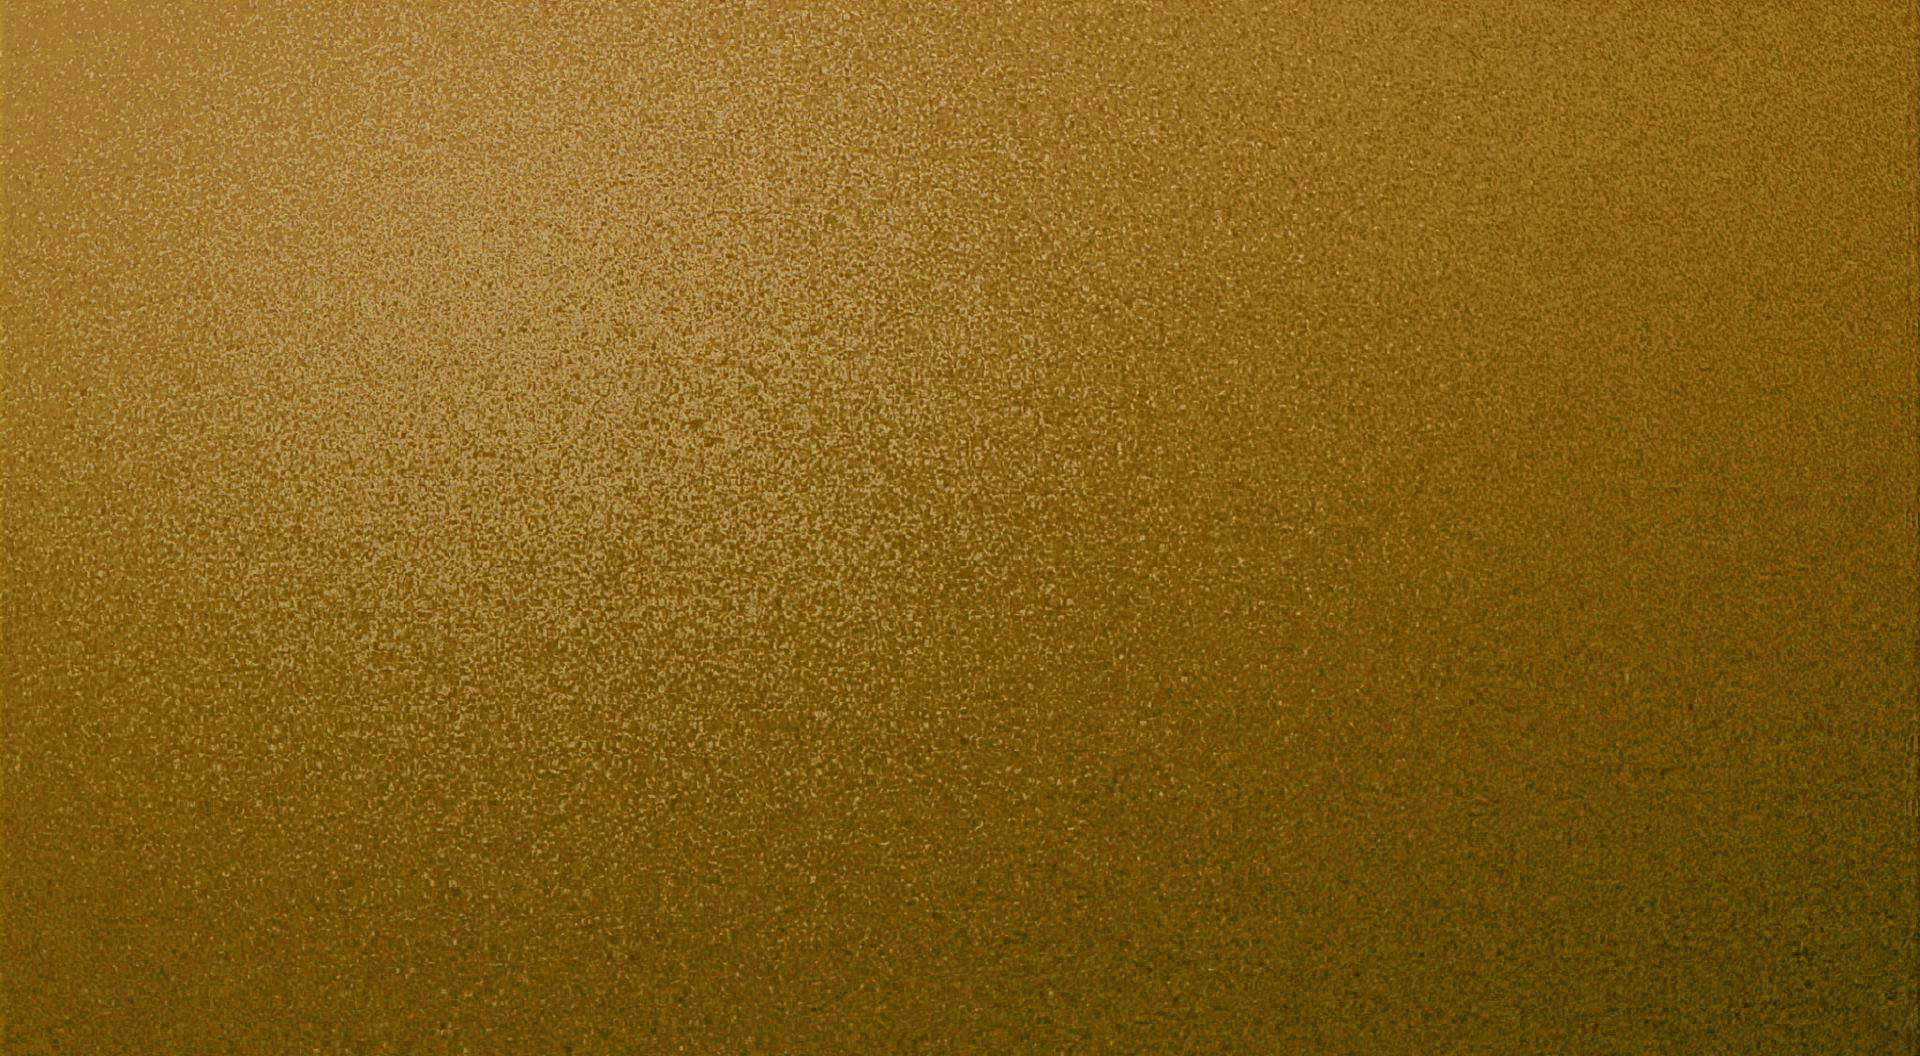 Gold textured wallpaper 2017 grasscloth wallpaper for Gold wallpaper